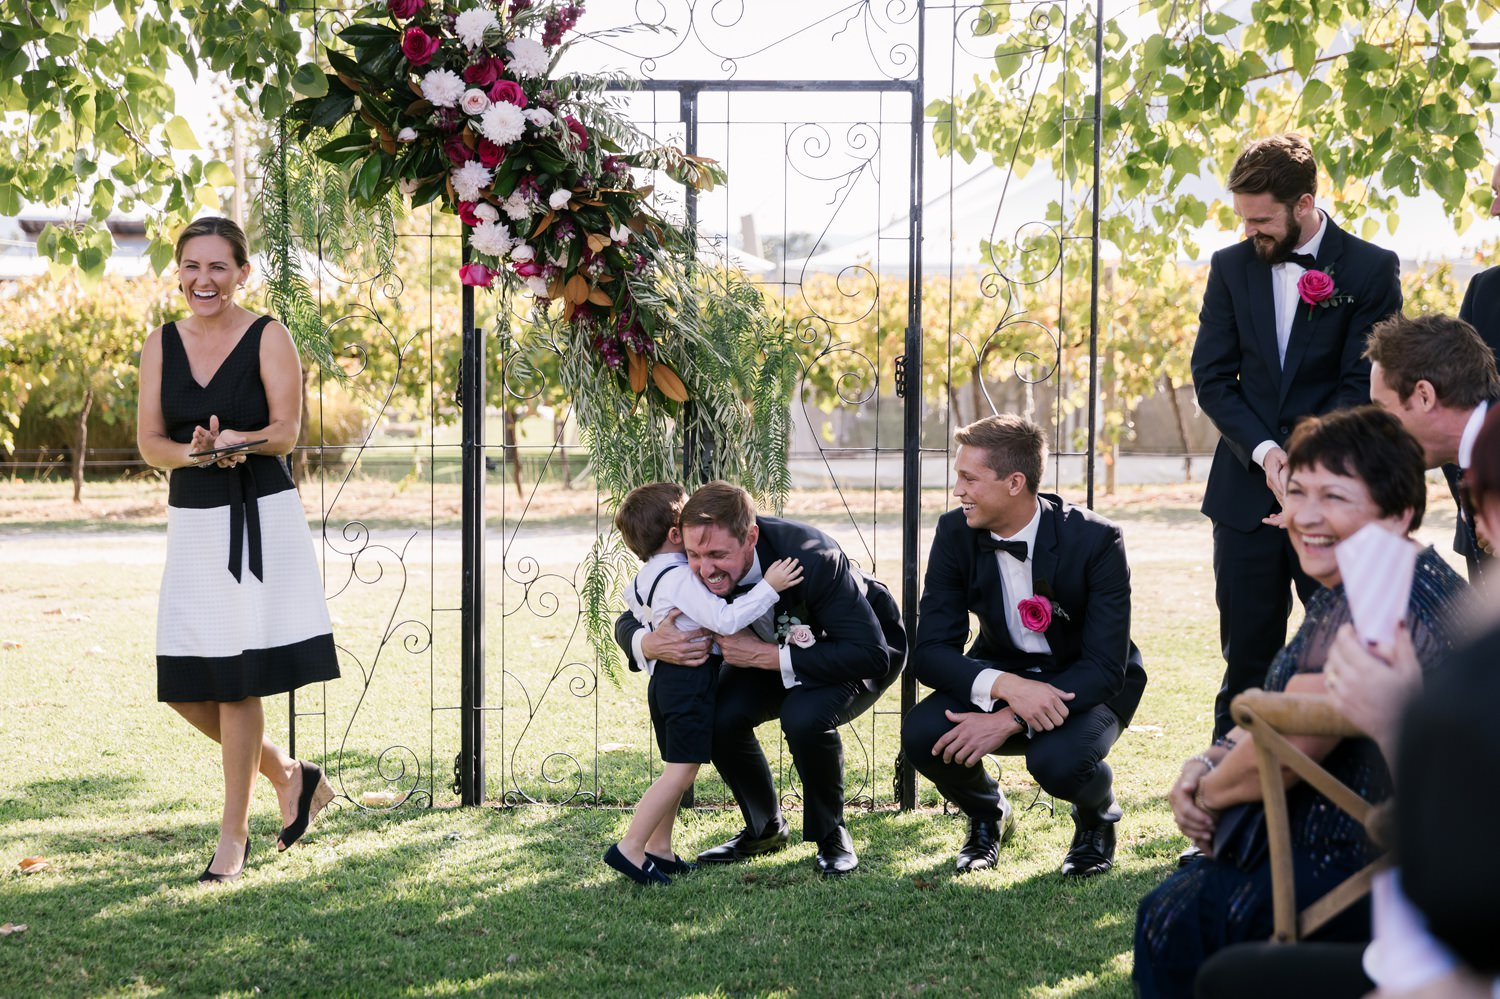 sarah jared the vinegrove mudgee canberra wedding photographer erin latimore 47.jpg